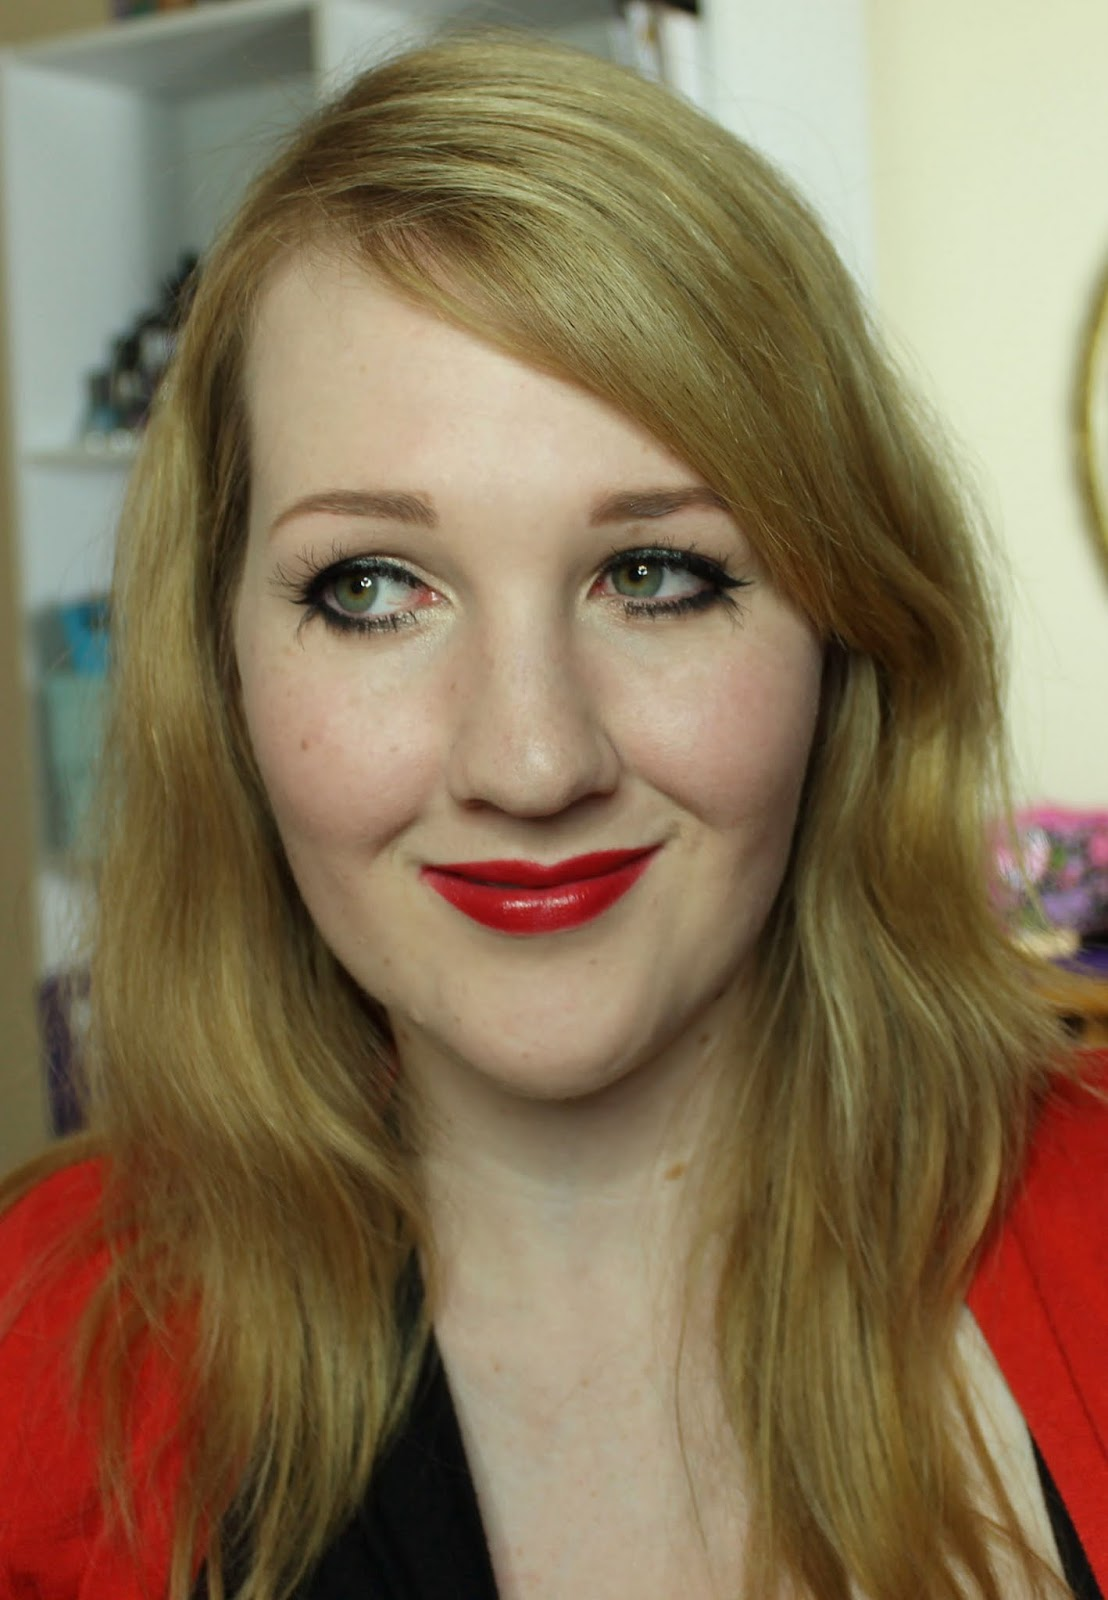 MAC X Rocky Horror Picture Show Lipsticks: Oblivion Swatches & Review